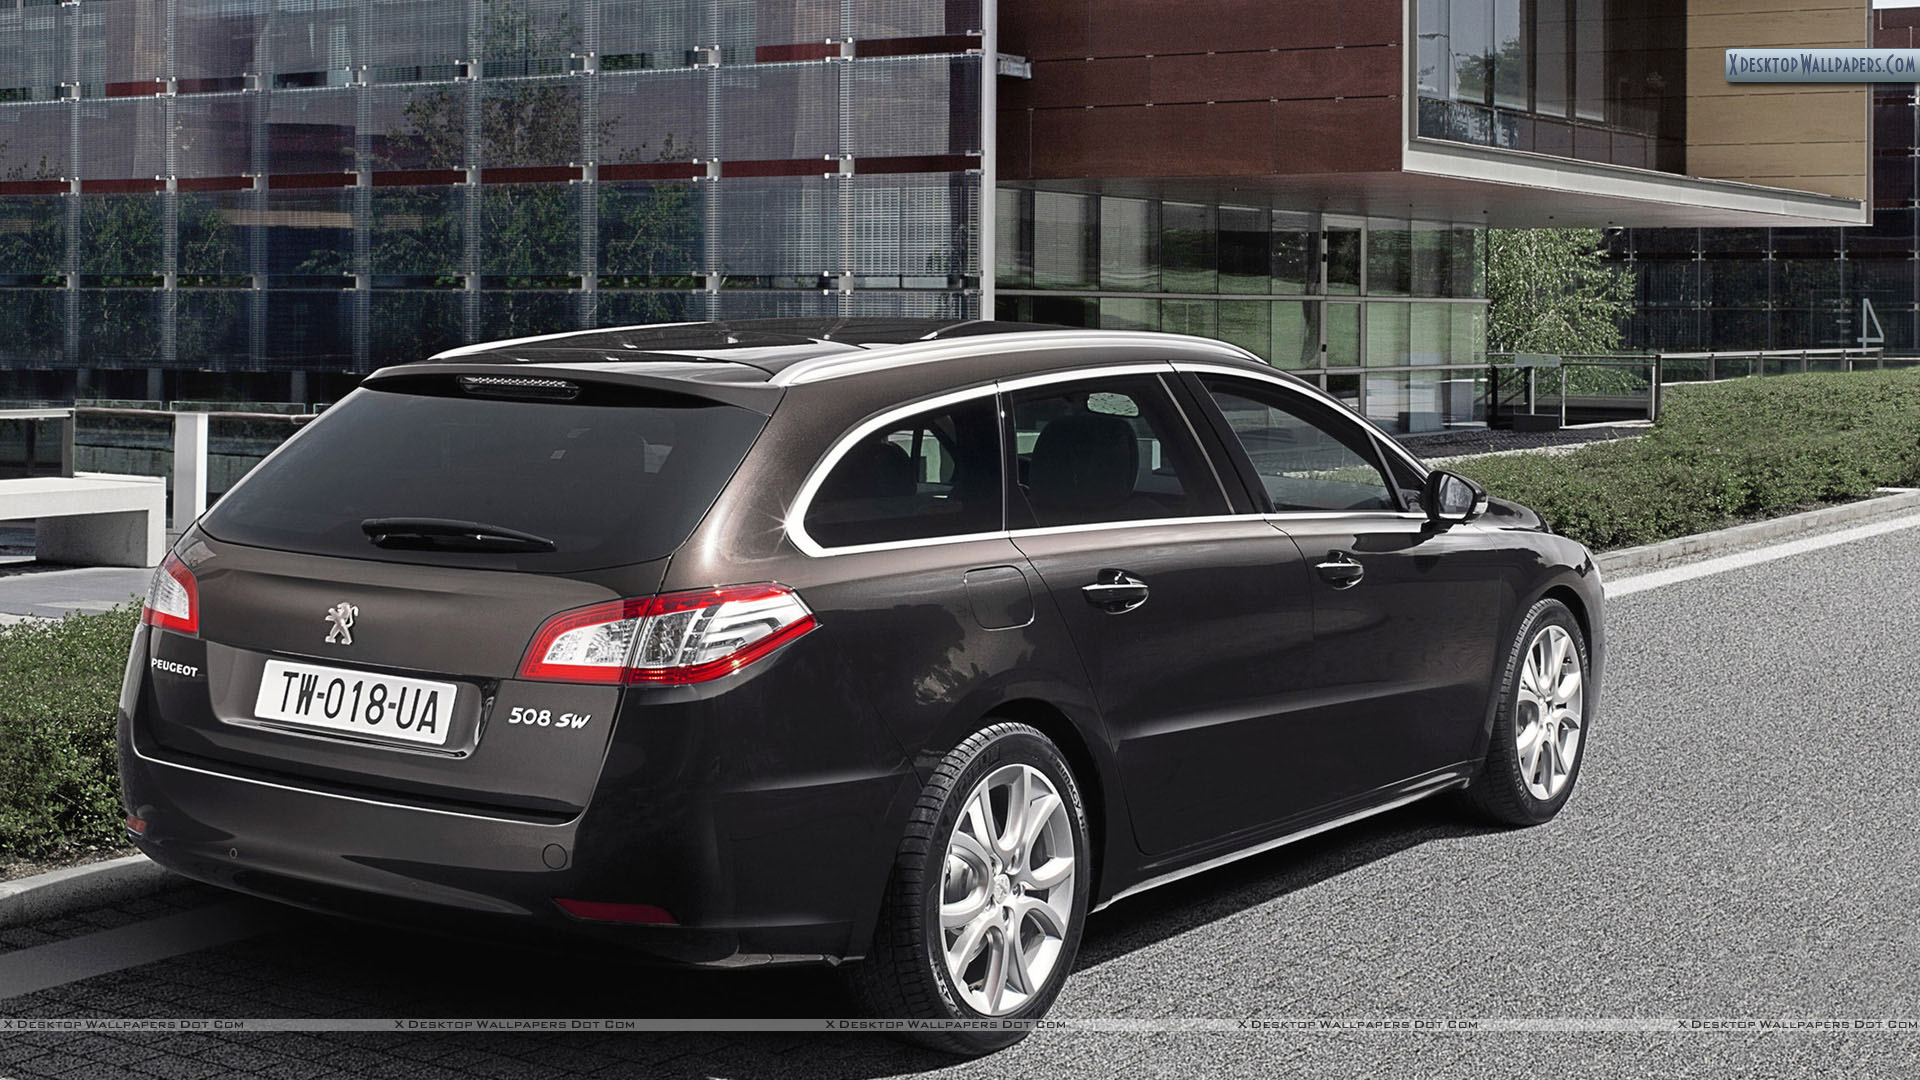 peugeot 508 sw parked outside a building wallpaper. Black Bedroom Furniture Sets. Home Design Ideas